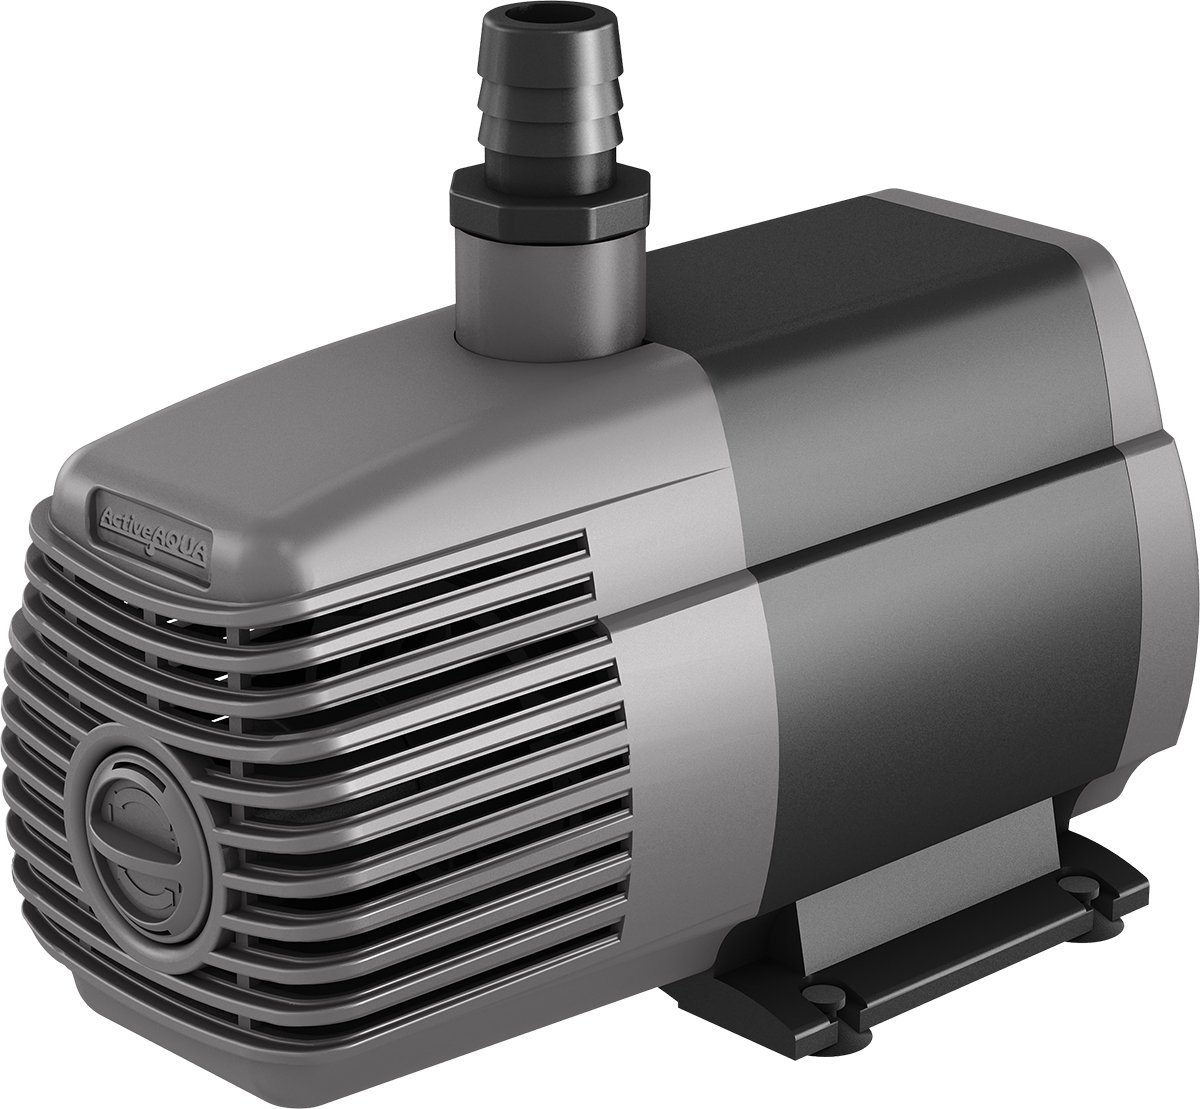 Hydrofarm Active Aqua Submersible Oil-Free Water Pump – Available in 7 Sizes